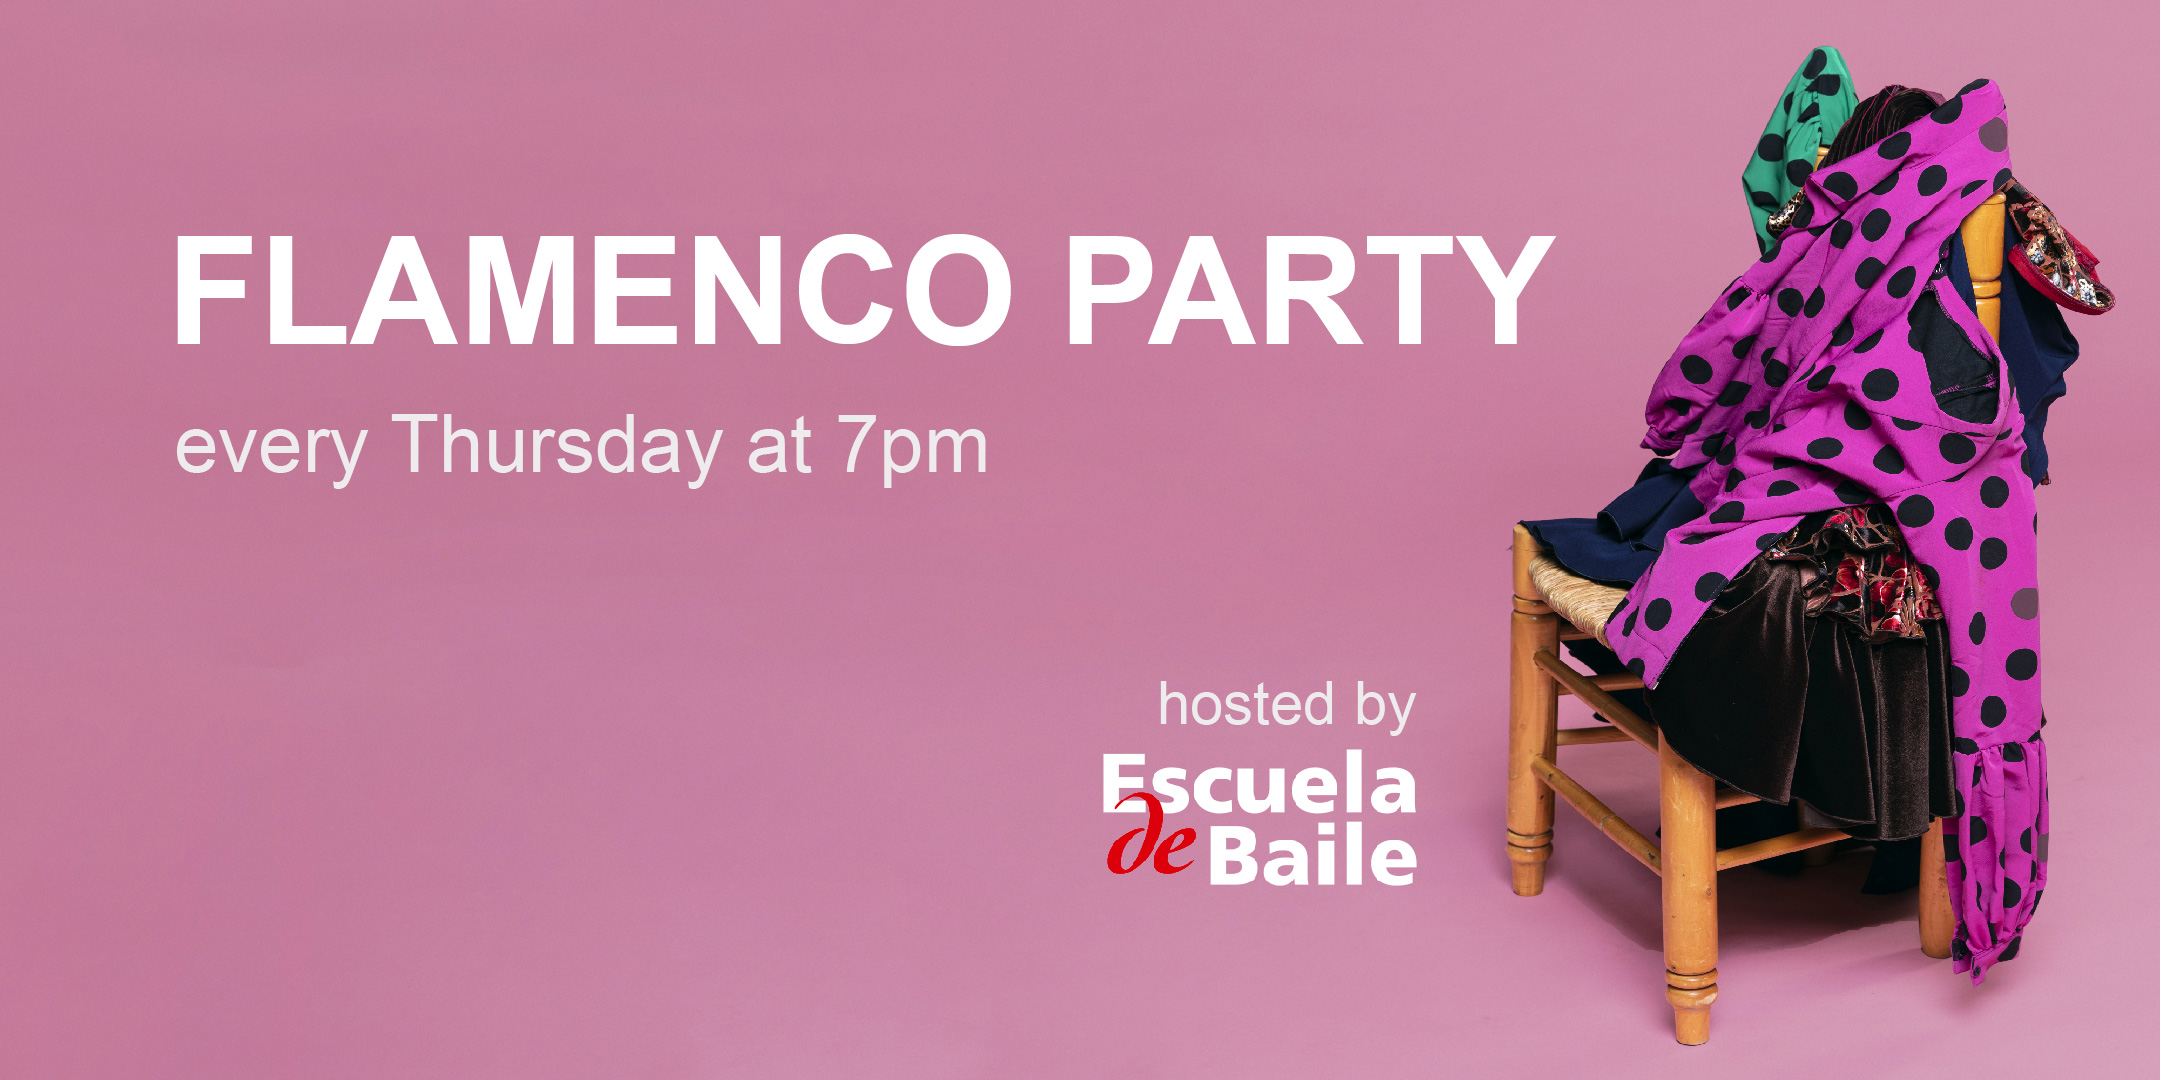 Escuela de Baile - Flamenco Party every Thursday on Zoom